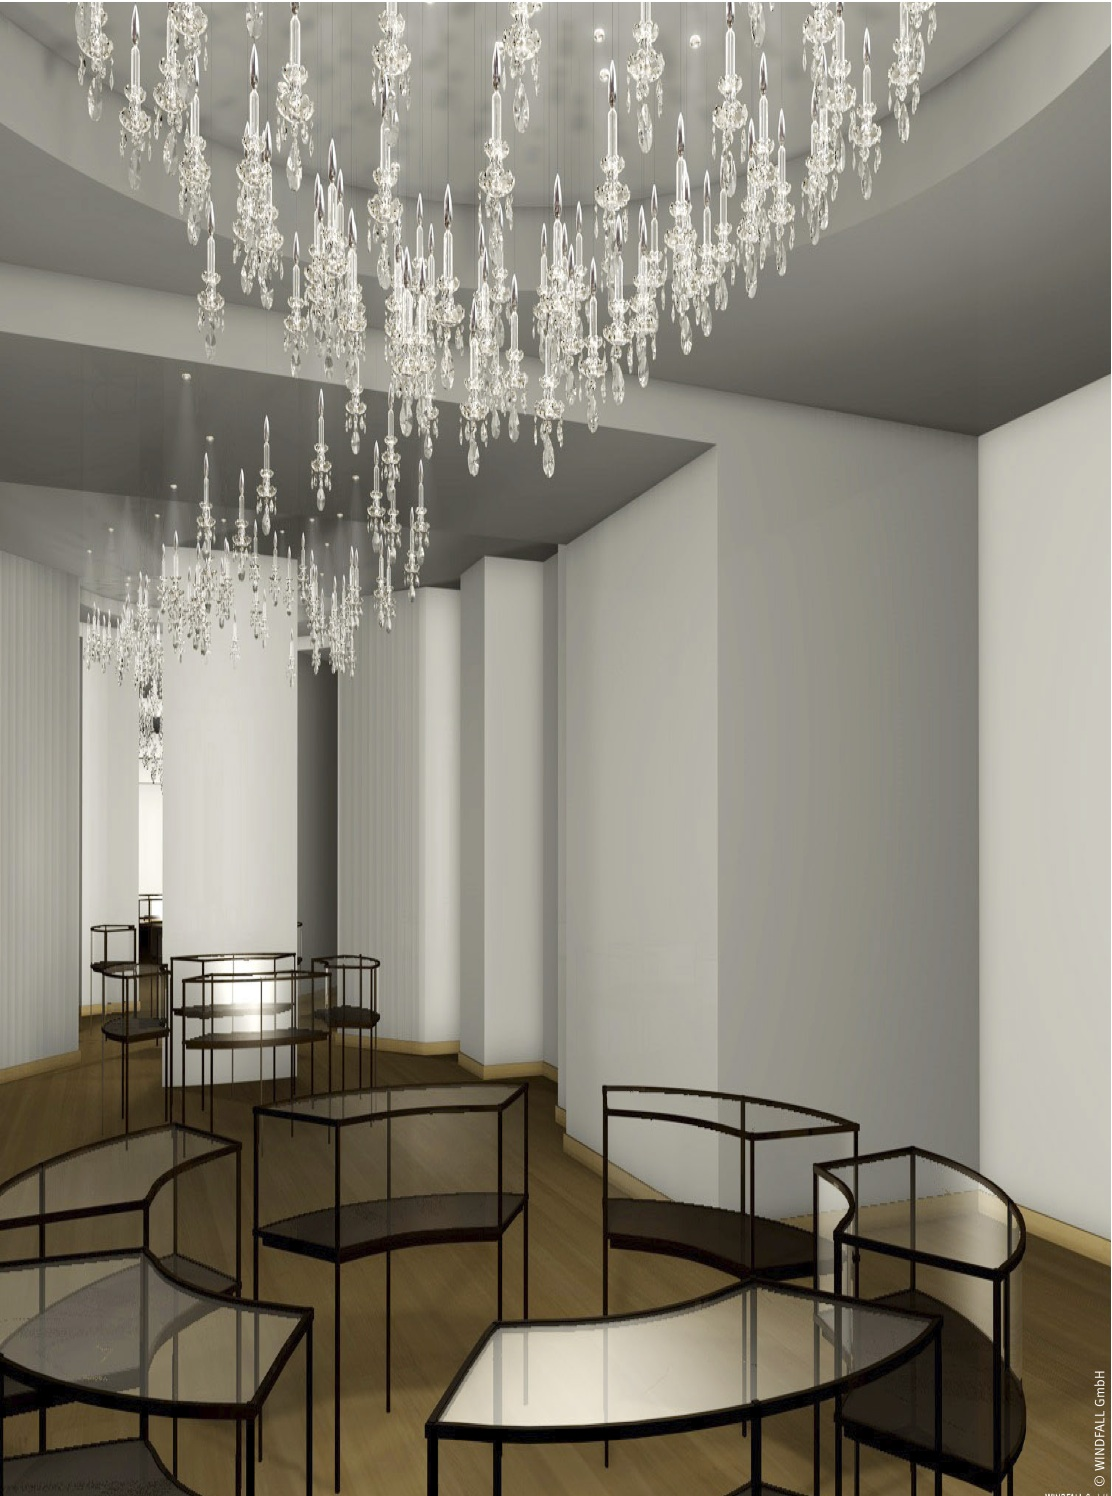 News And Events Windfall Contemporary Crystal Lighting & Indoor and Outdoor Lighting Idea and DIY - Democraciaejustica